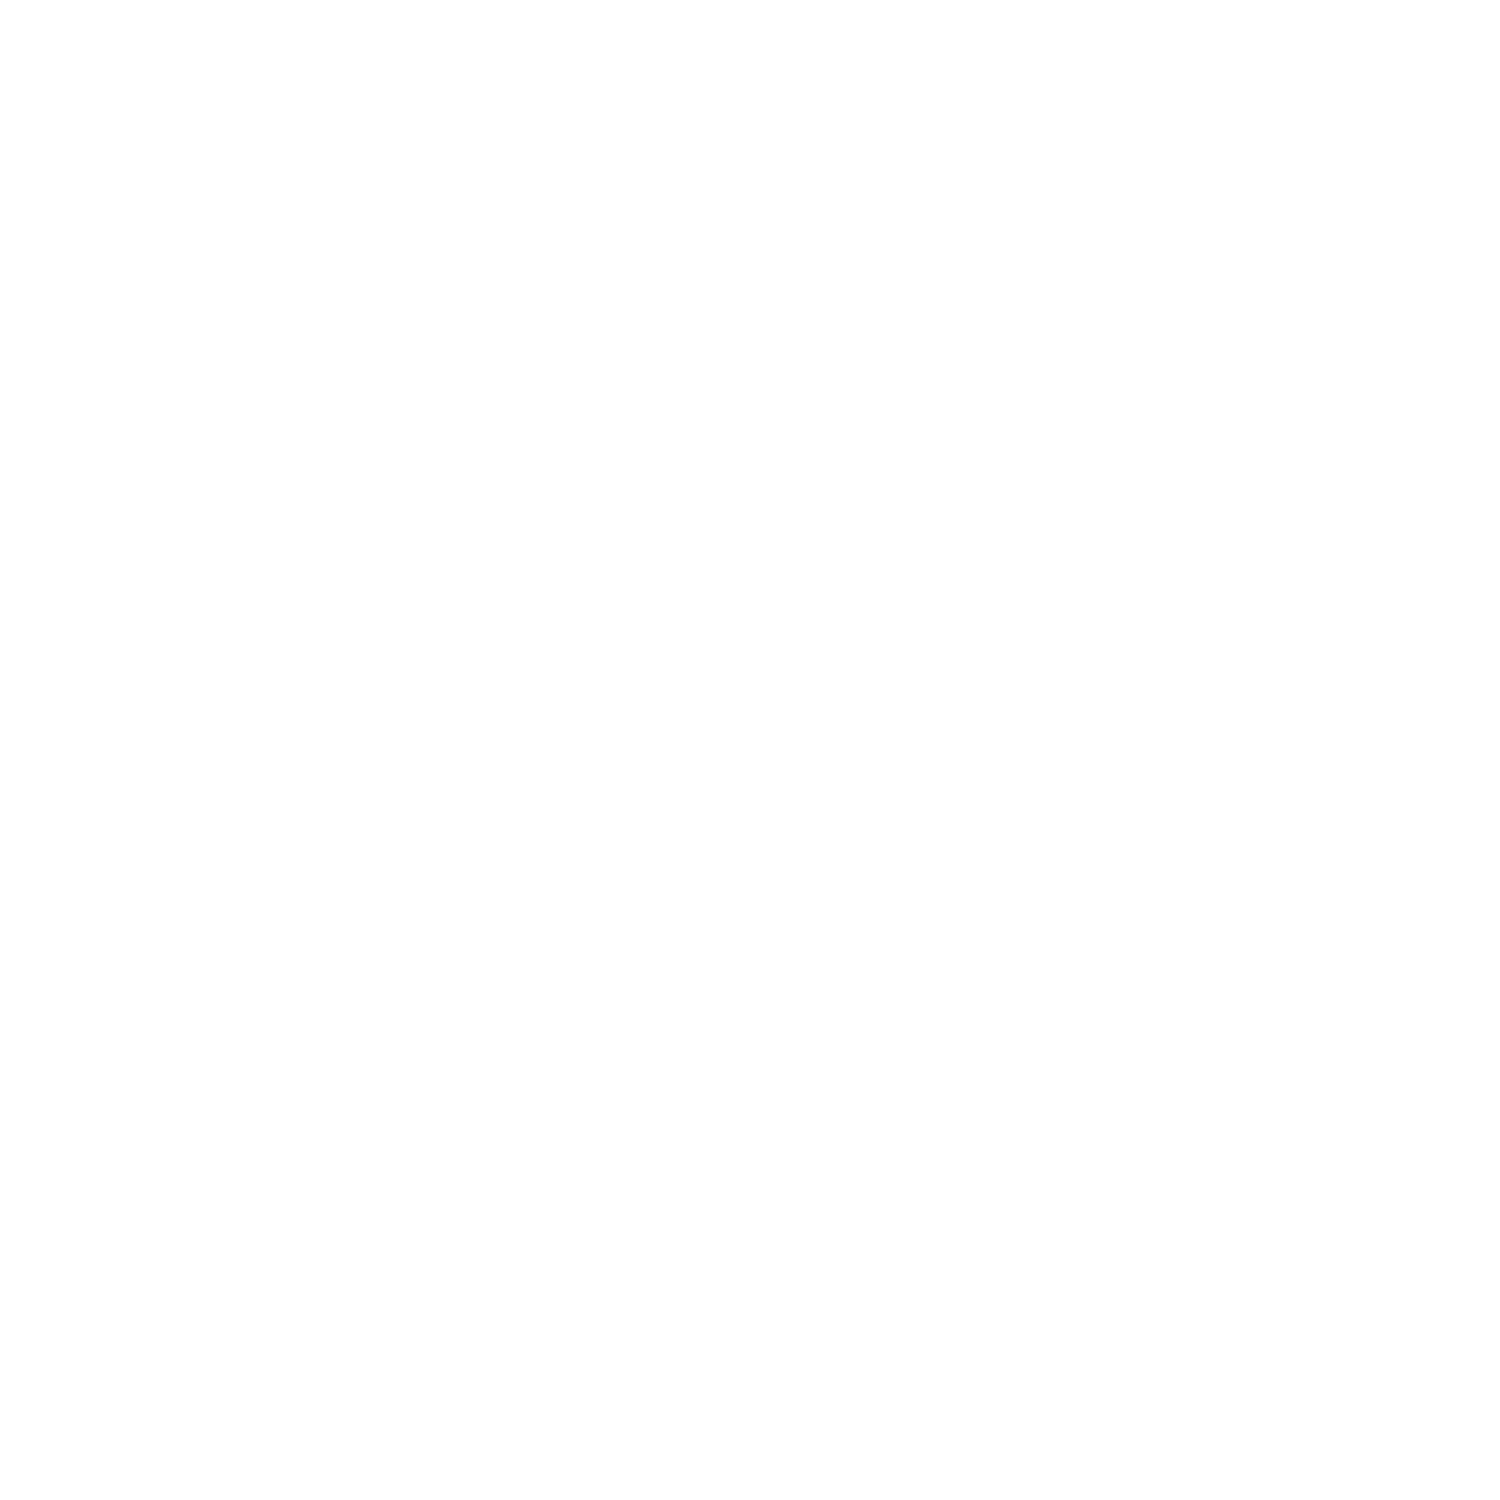 Atco Assembly of God